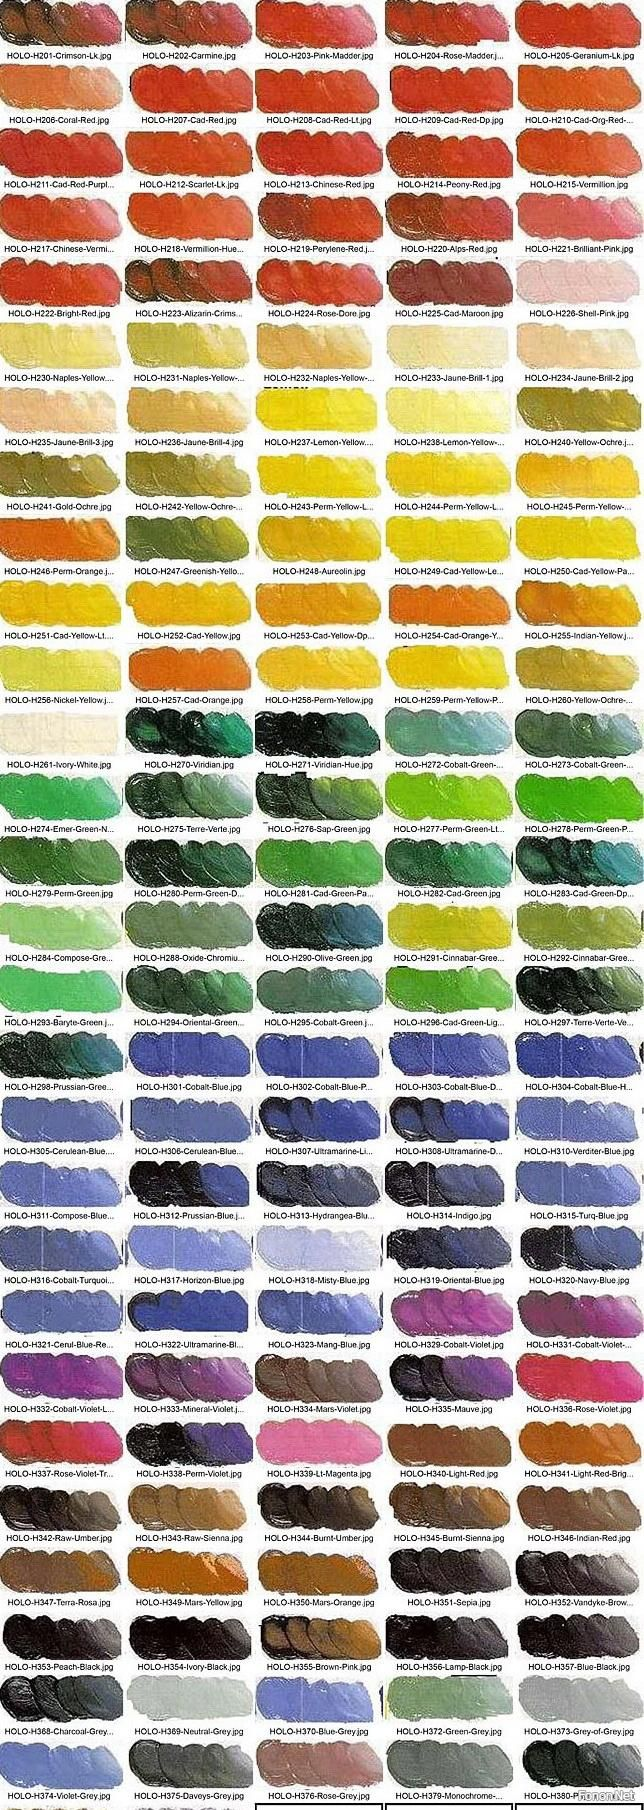 171 best coloring images on pinterest acrylics abstract art and learn drawingart designscolour chartoilcraftscoloringart nvjuhfo Choice Image